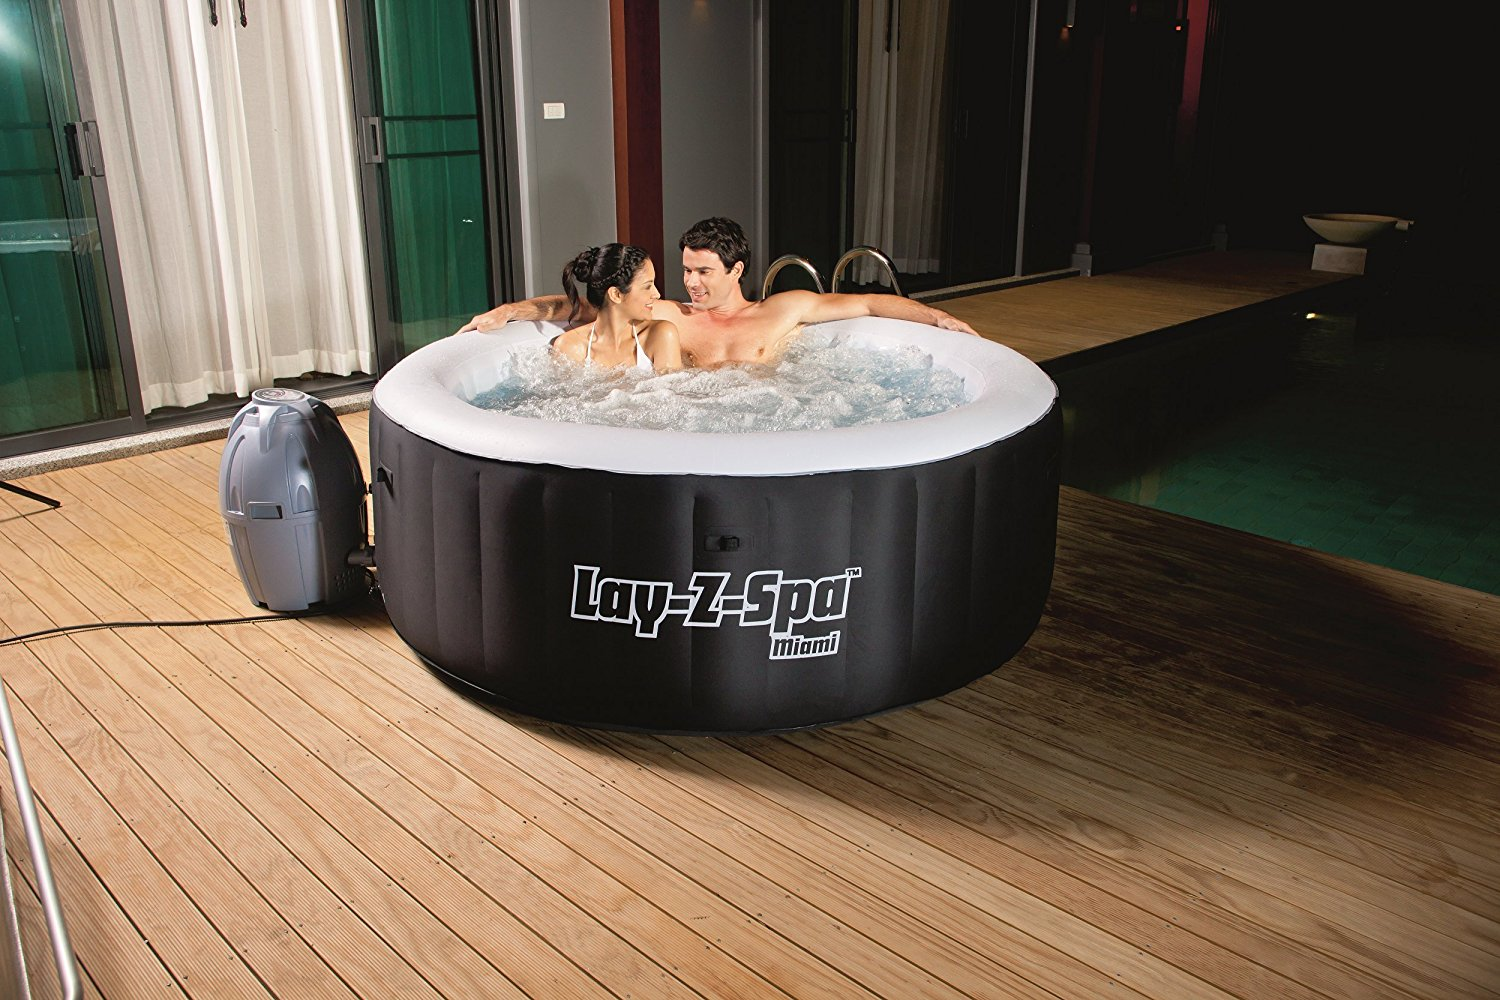 Jacuzzi Pool Pump Reviews Saluspa Miami Airjet Inflatable Hot Tub Detailed Review